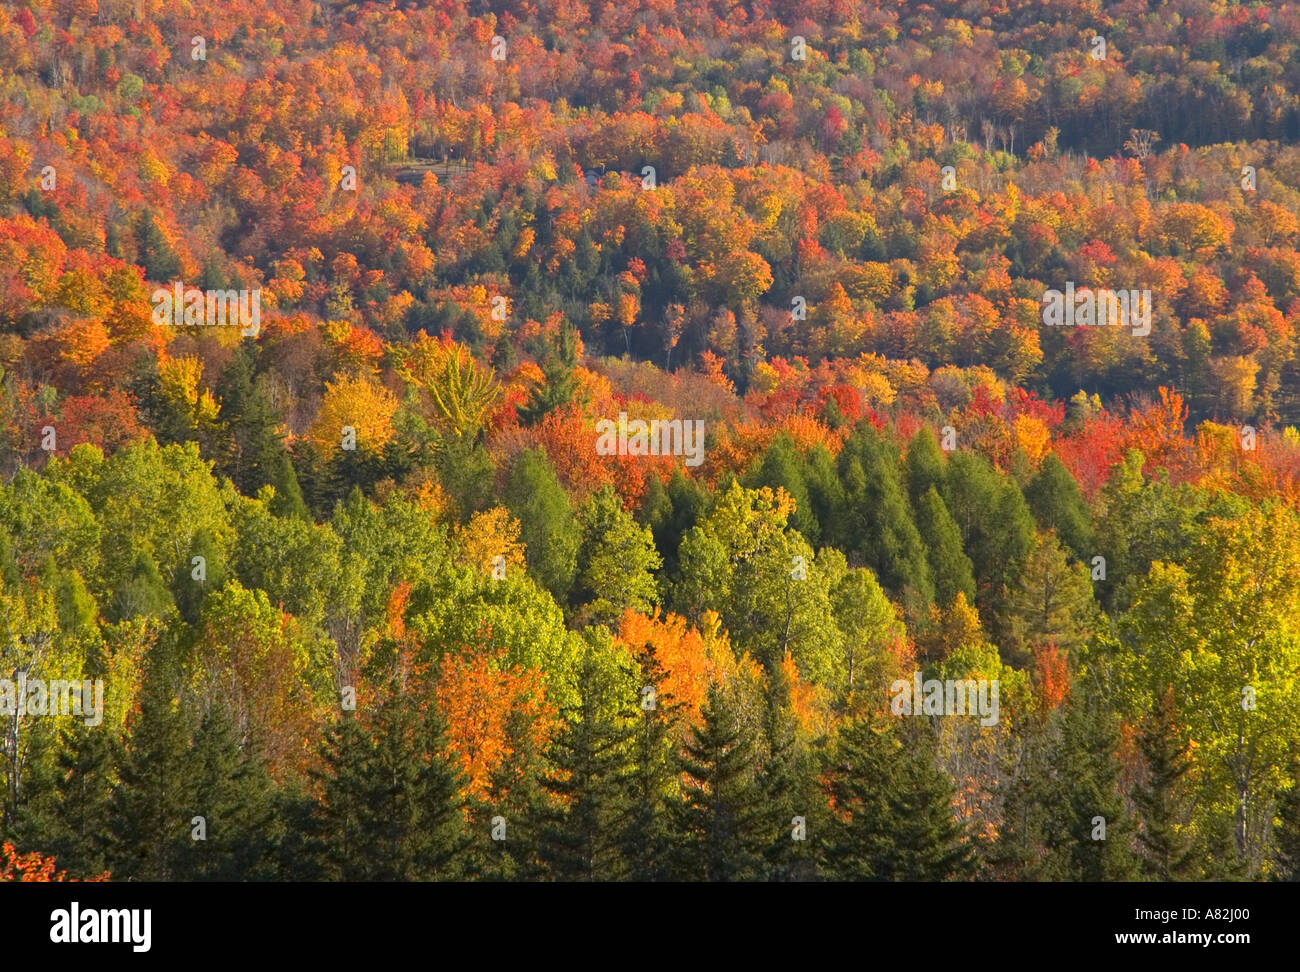 Autumn trees, Vermont, New England, USA - Stock Image